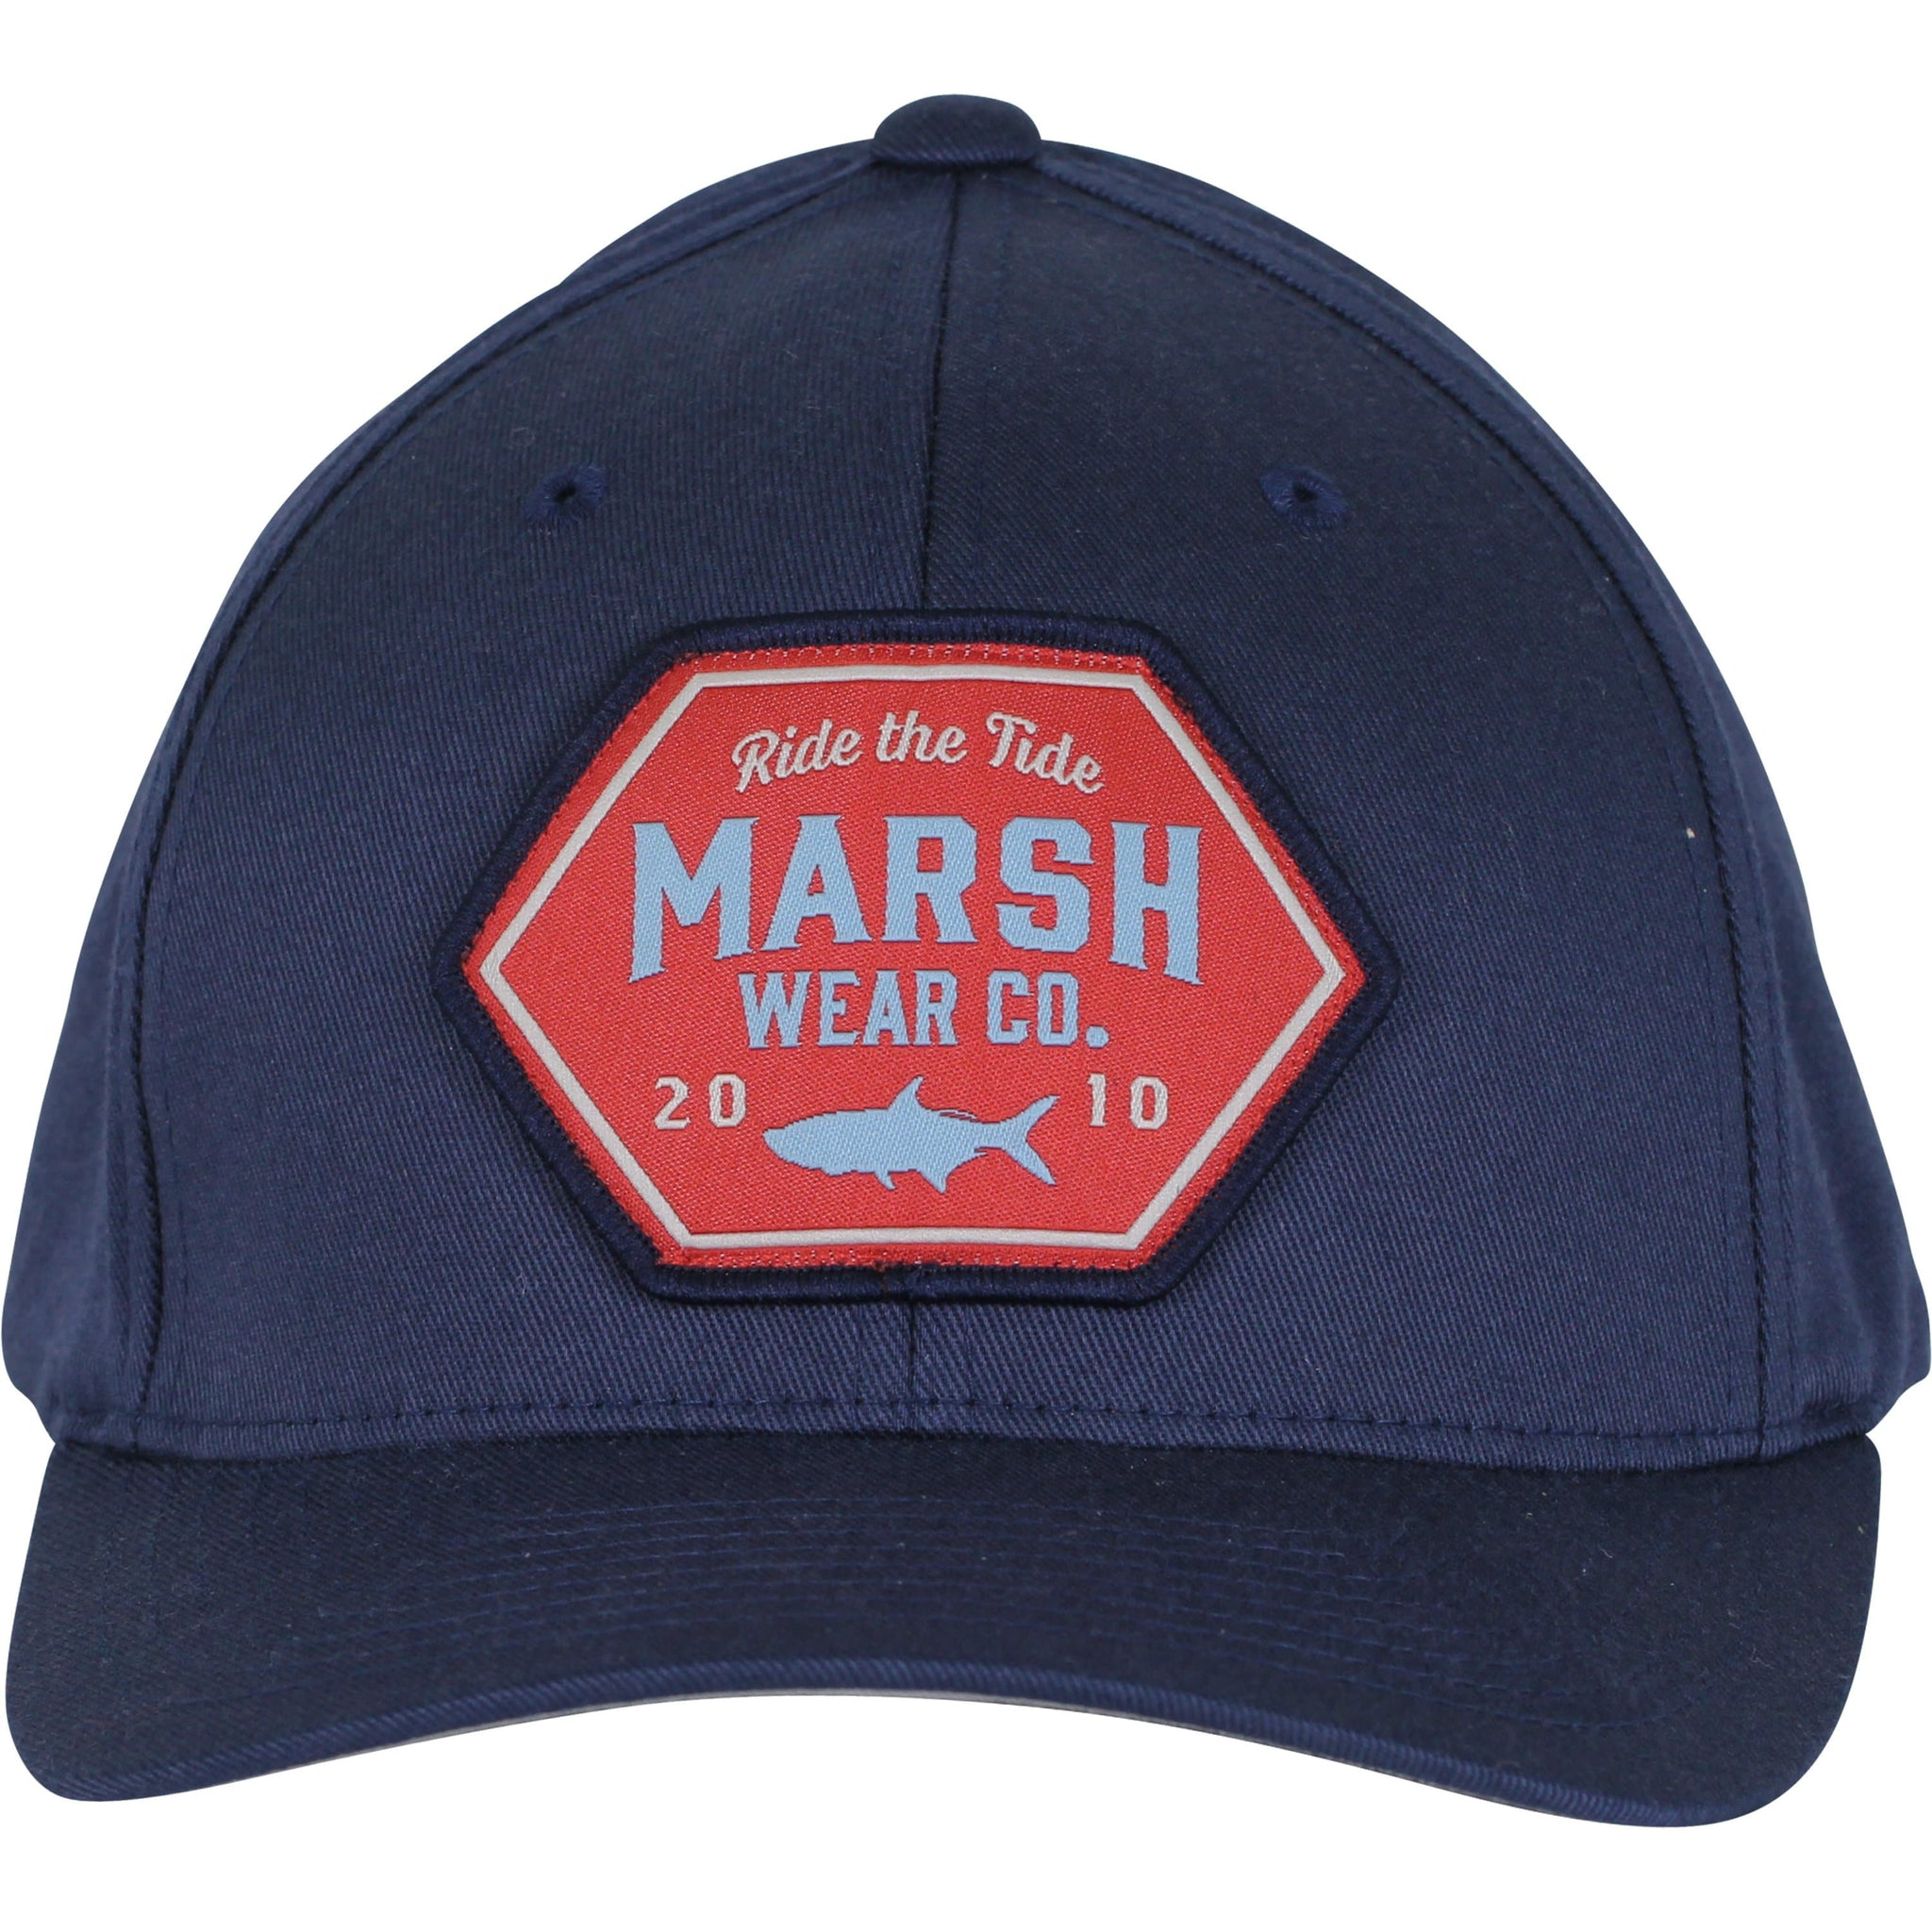 aed55d0f891d7 Generator Flexfit Hat - Marsh Wear